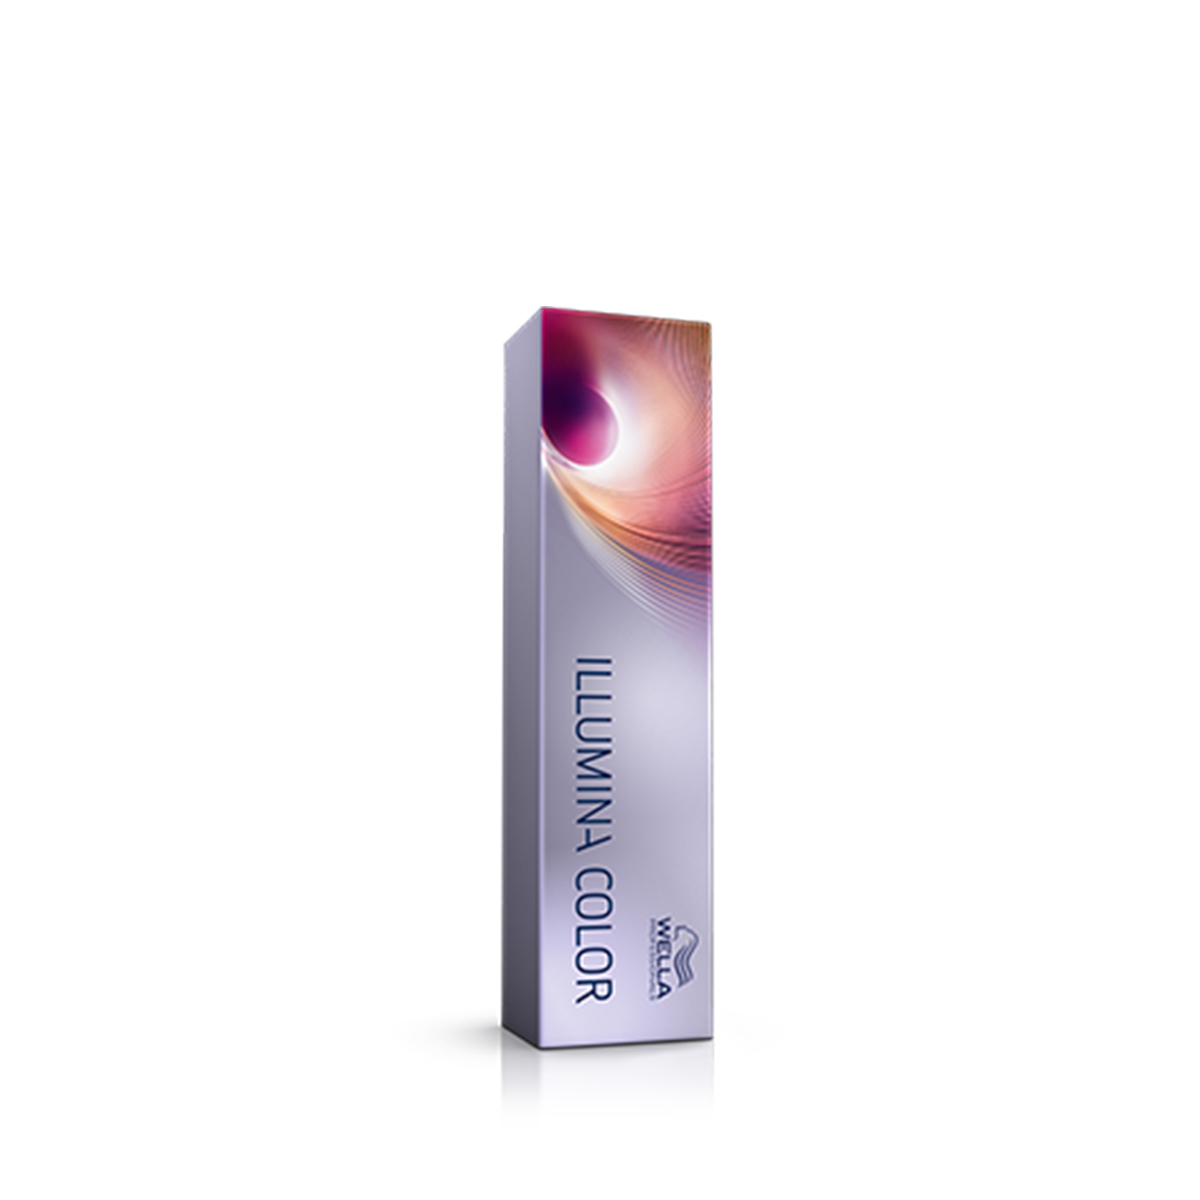 Illumina Color 60 Ml Biondo Chiaro Violetto Cendre'